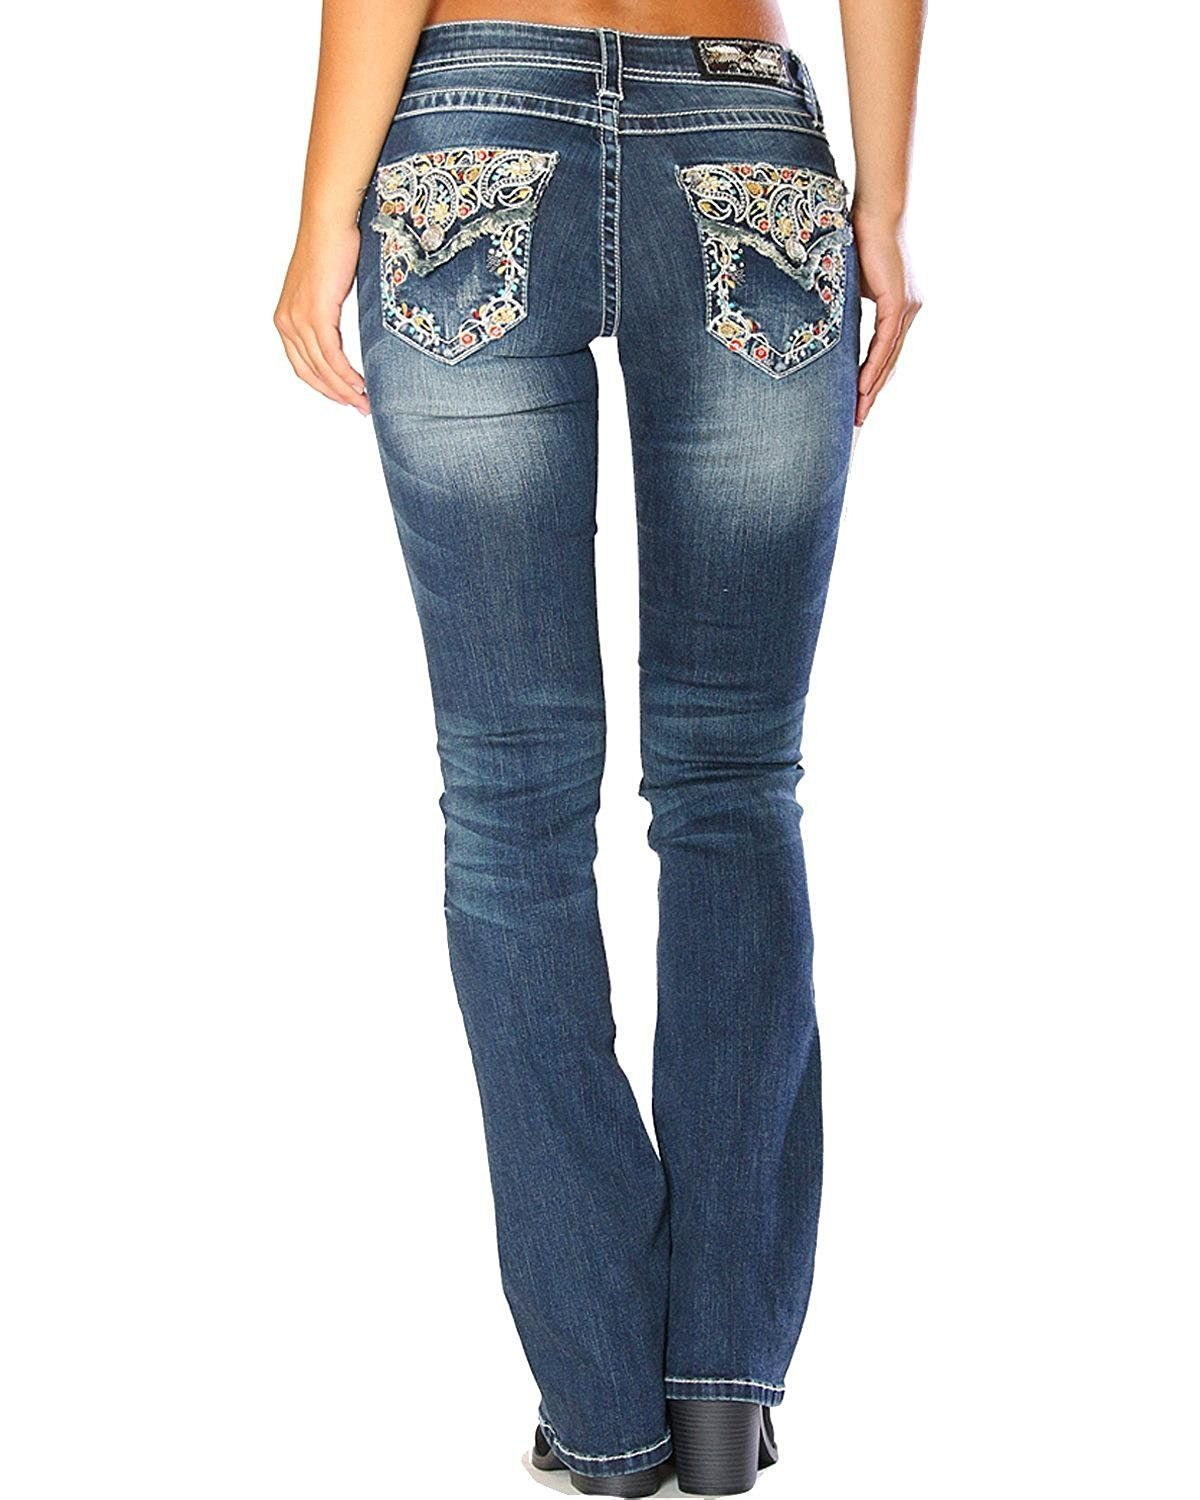 c0392ac2daf Grace in LA Women's Blue Floral Embroidered Flap Jeans Boot Cut - EB3202